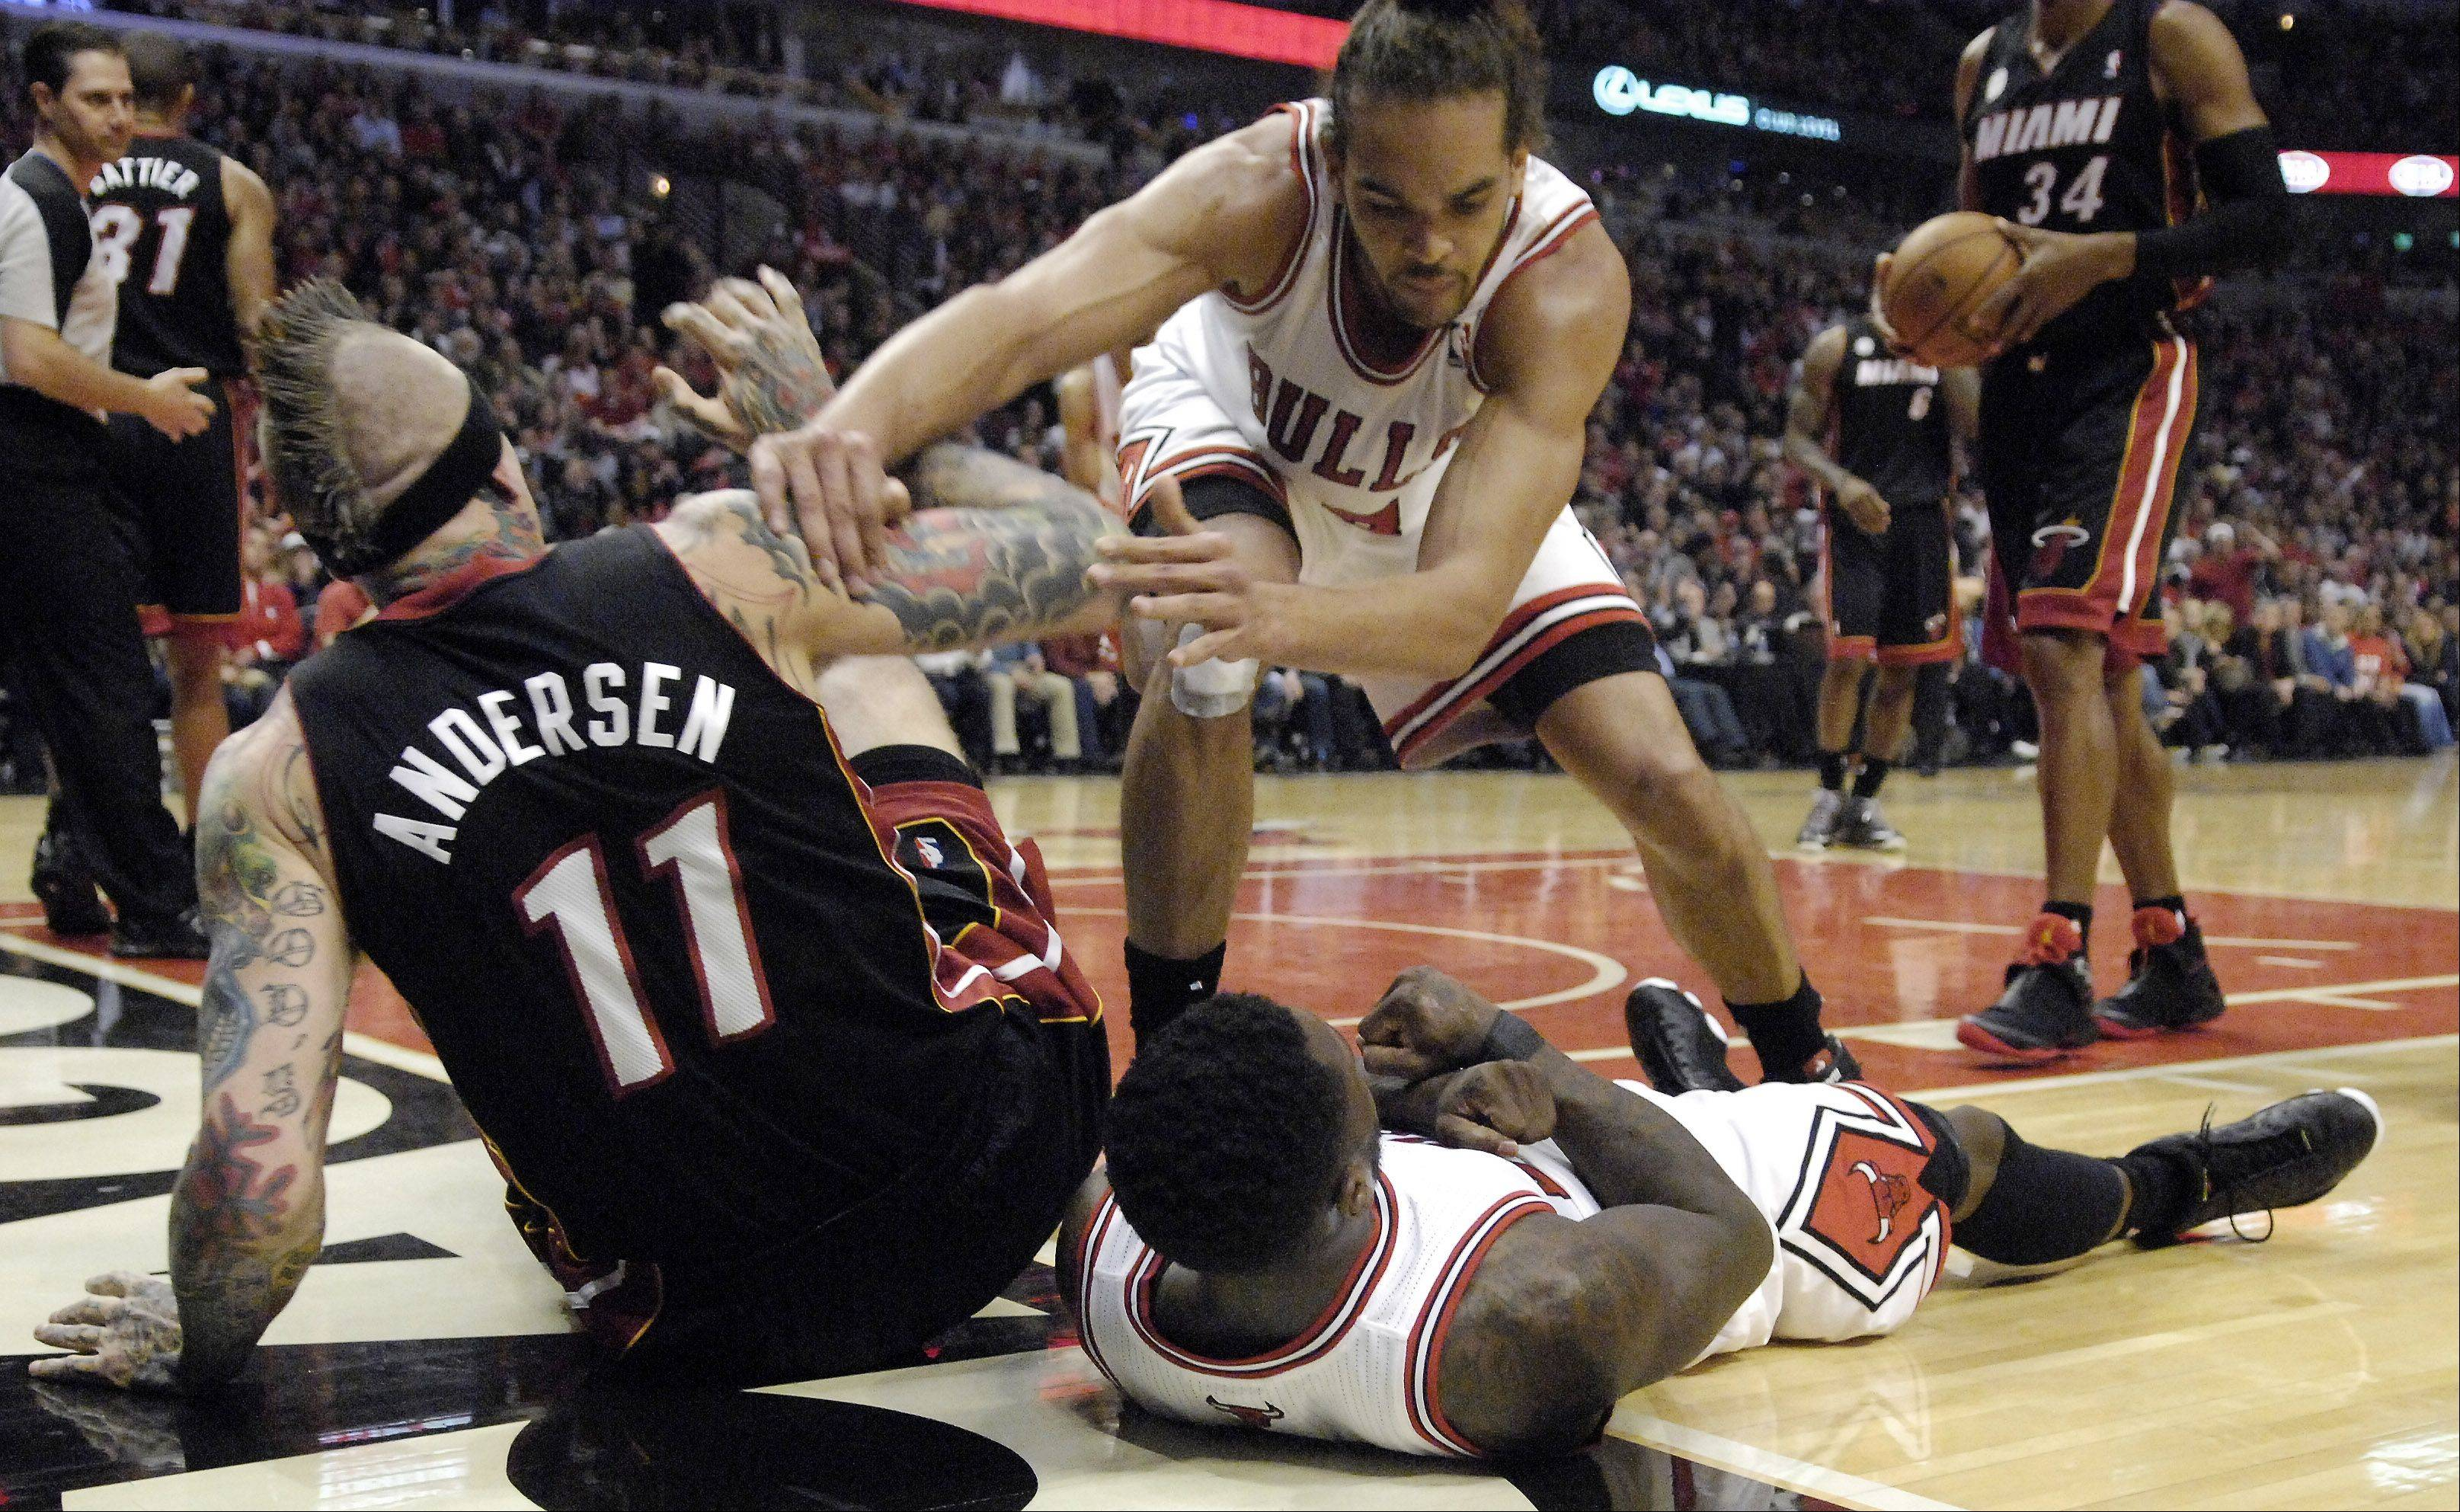 Bulls center Joakim Noah pushes Heat forward Chris Andersen off teammate Nate Robinson in Game 3 on Friday. Noah received a technical foul.